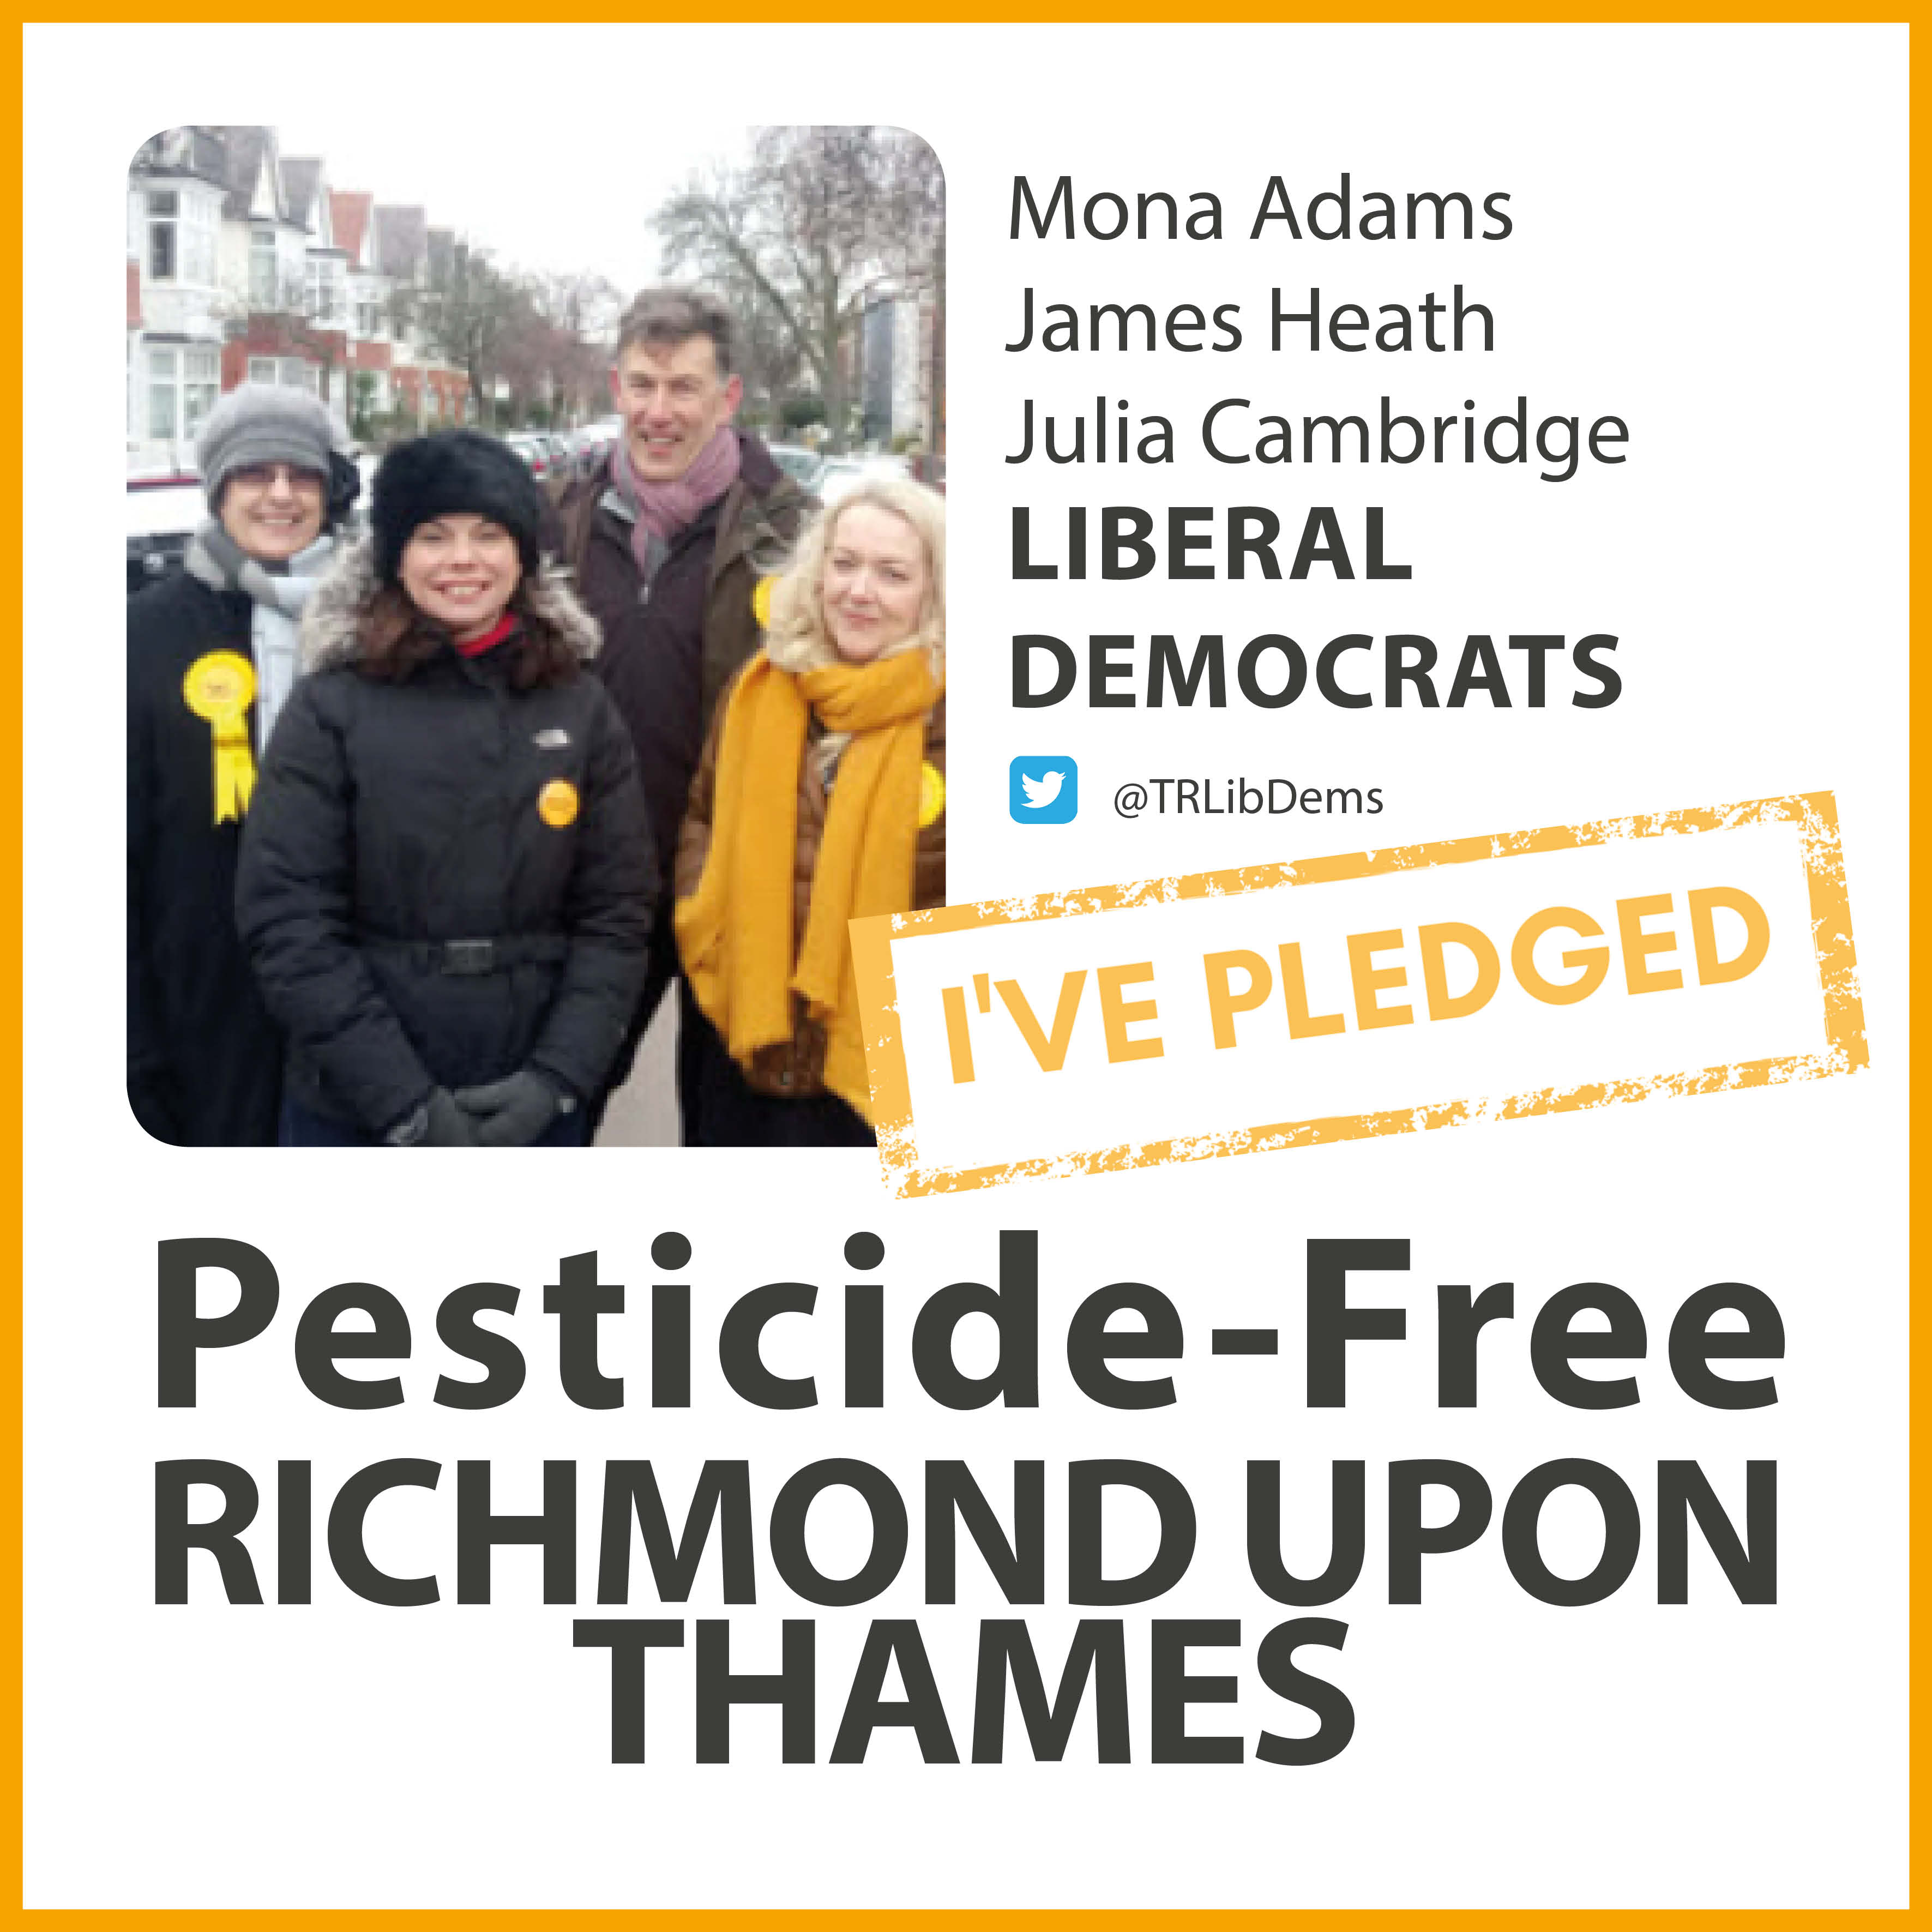 East Sheen Lib Dems have taken the pesticide-free pledge